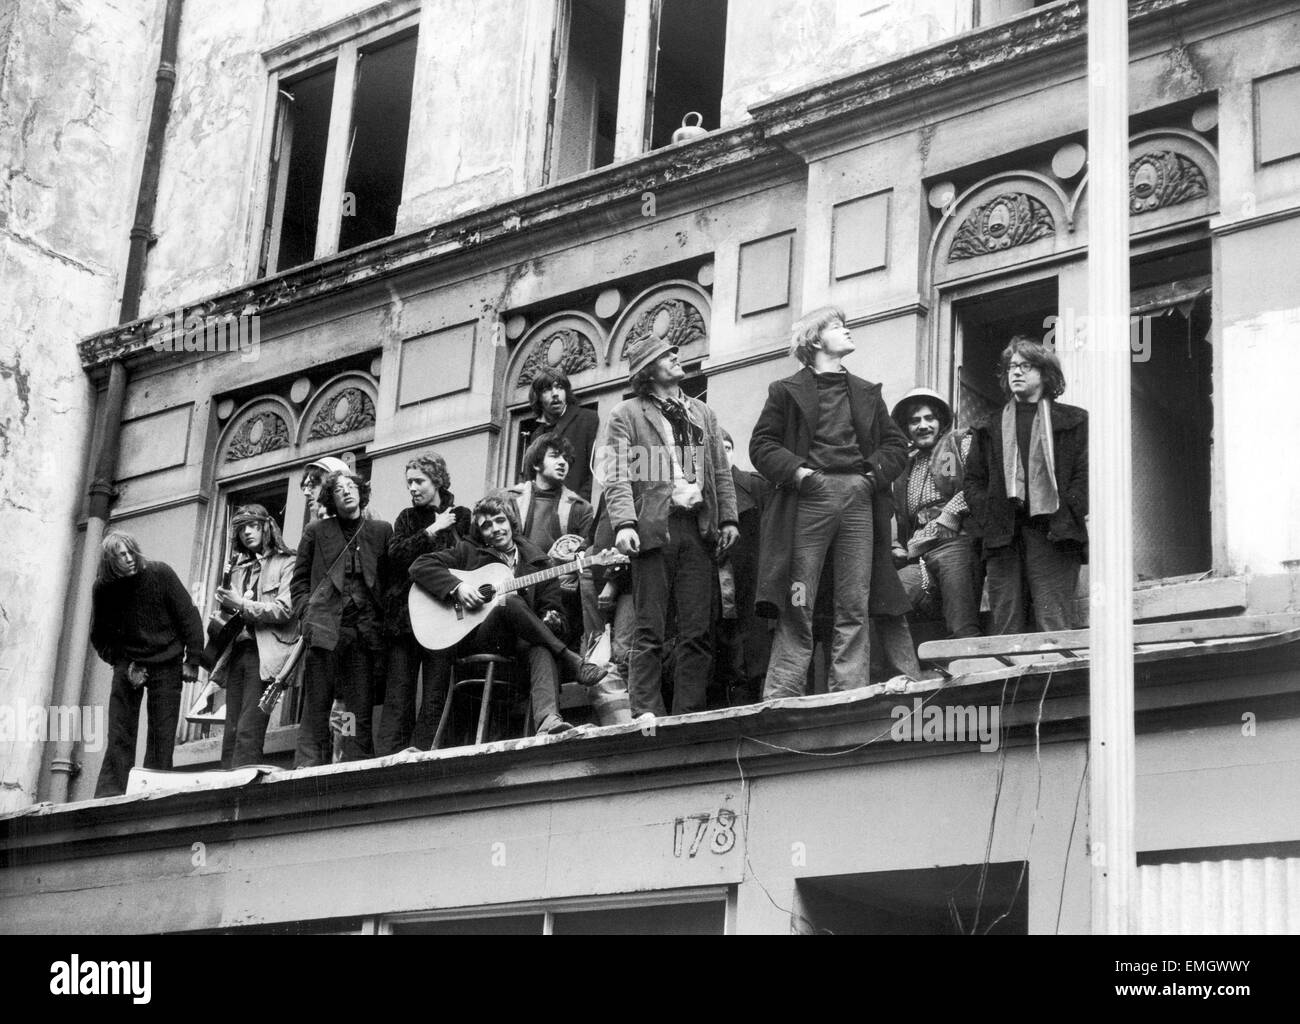 A group of 'Human Rights' sqautters singing We Shall Not Be Moved from the balcony of a derelict hotel they - Stock Image